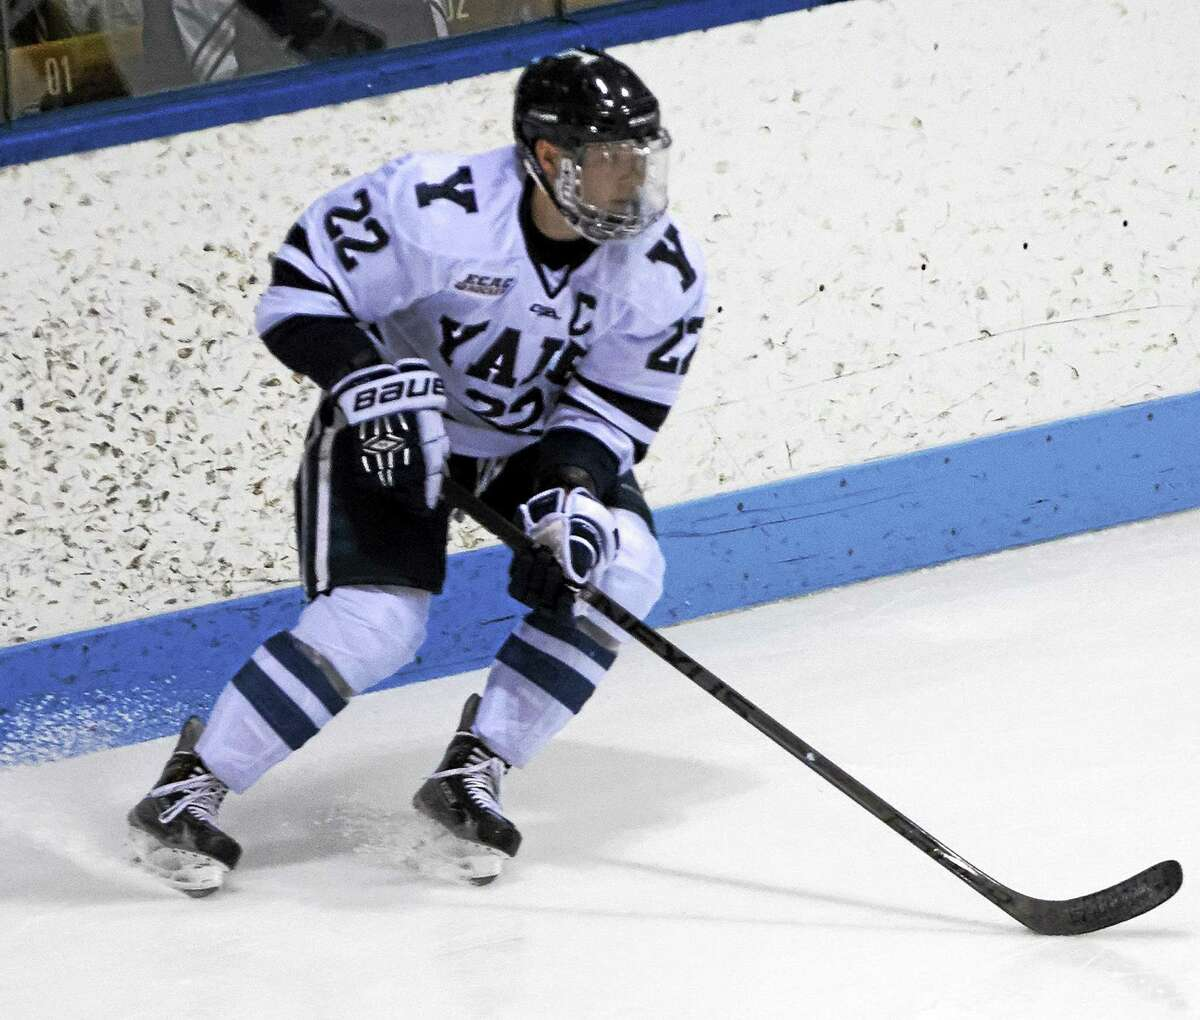 Yale senior captain defenseman Tommy Fallen leads a Bulldogs defense which allows just 1.53 goals per game, tops in the nation. He is also the active leader on the Bulldogs' career points list.